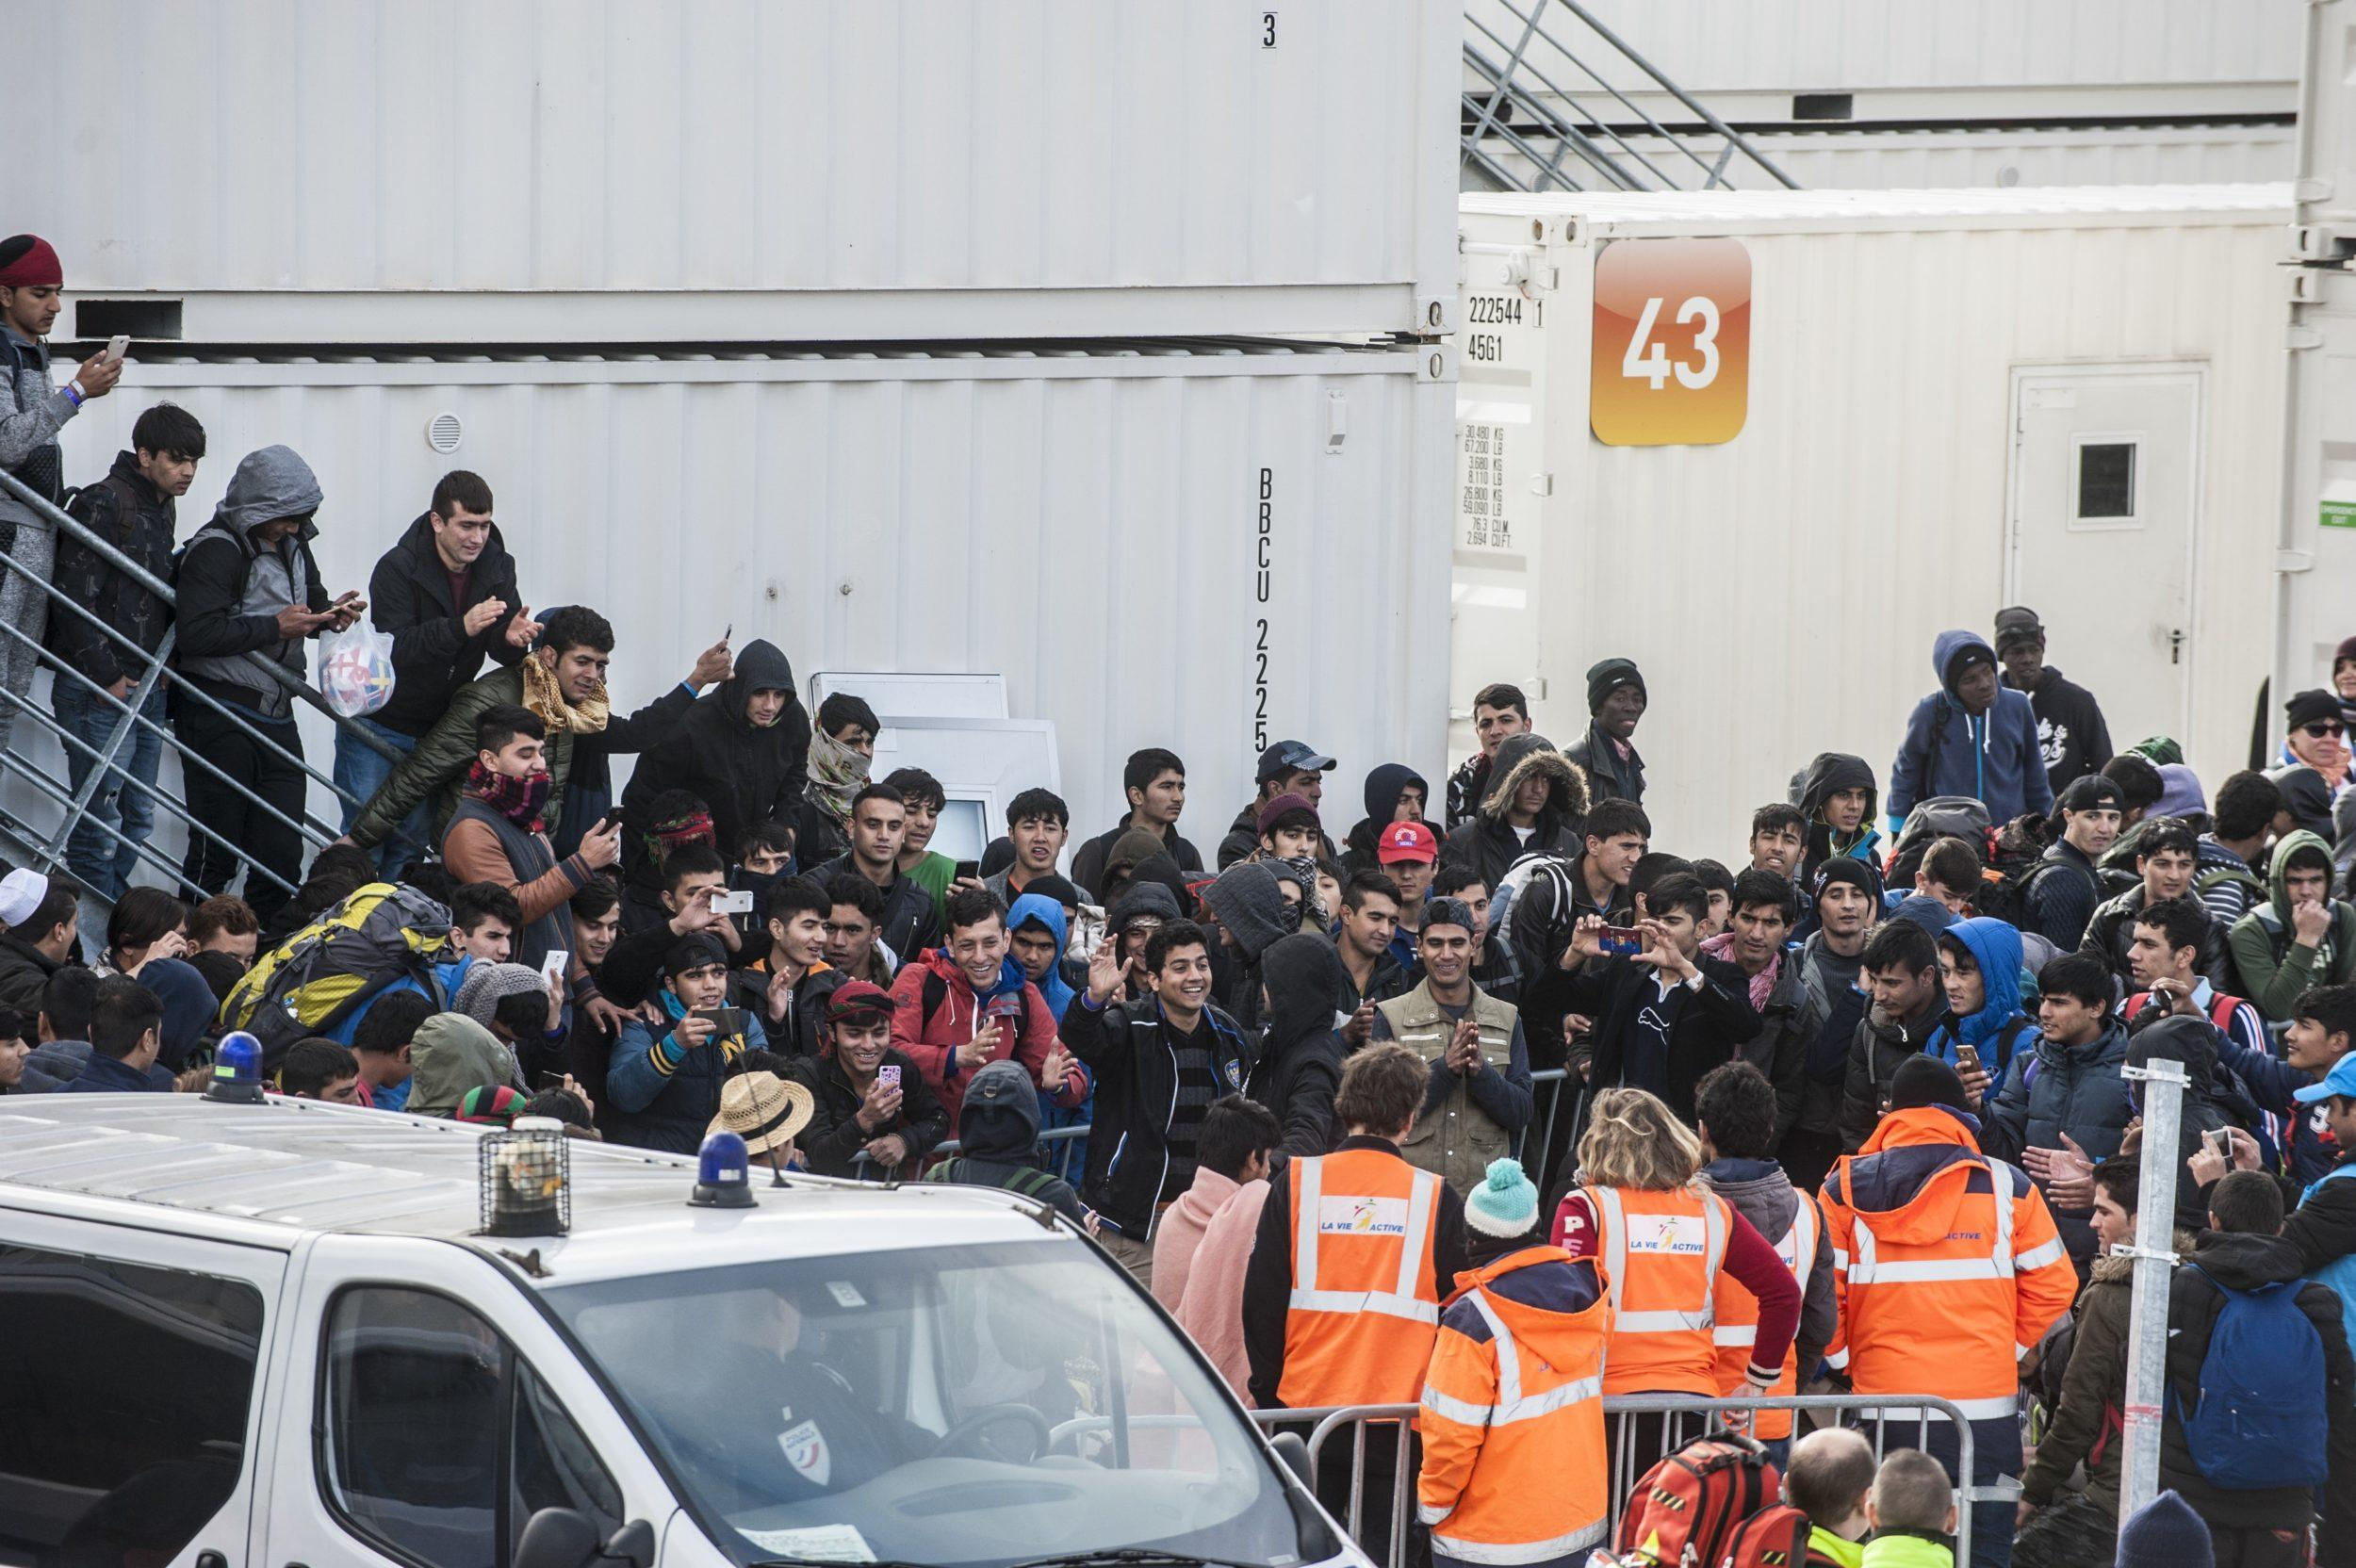 Macron is blaming the UK for Europe's migrant problem